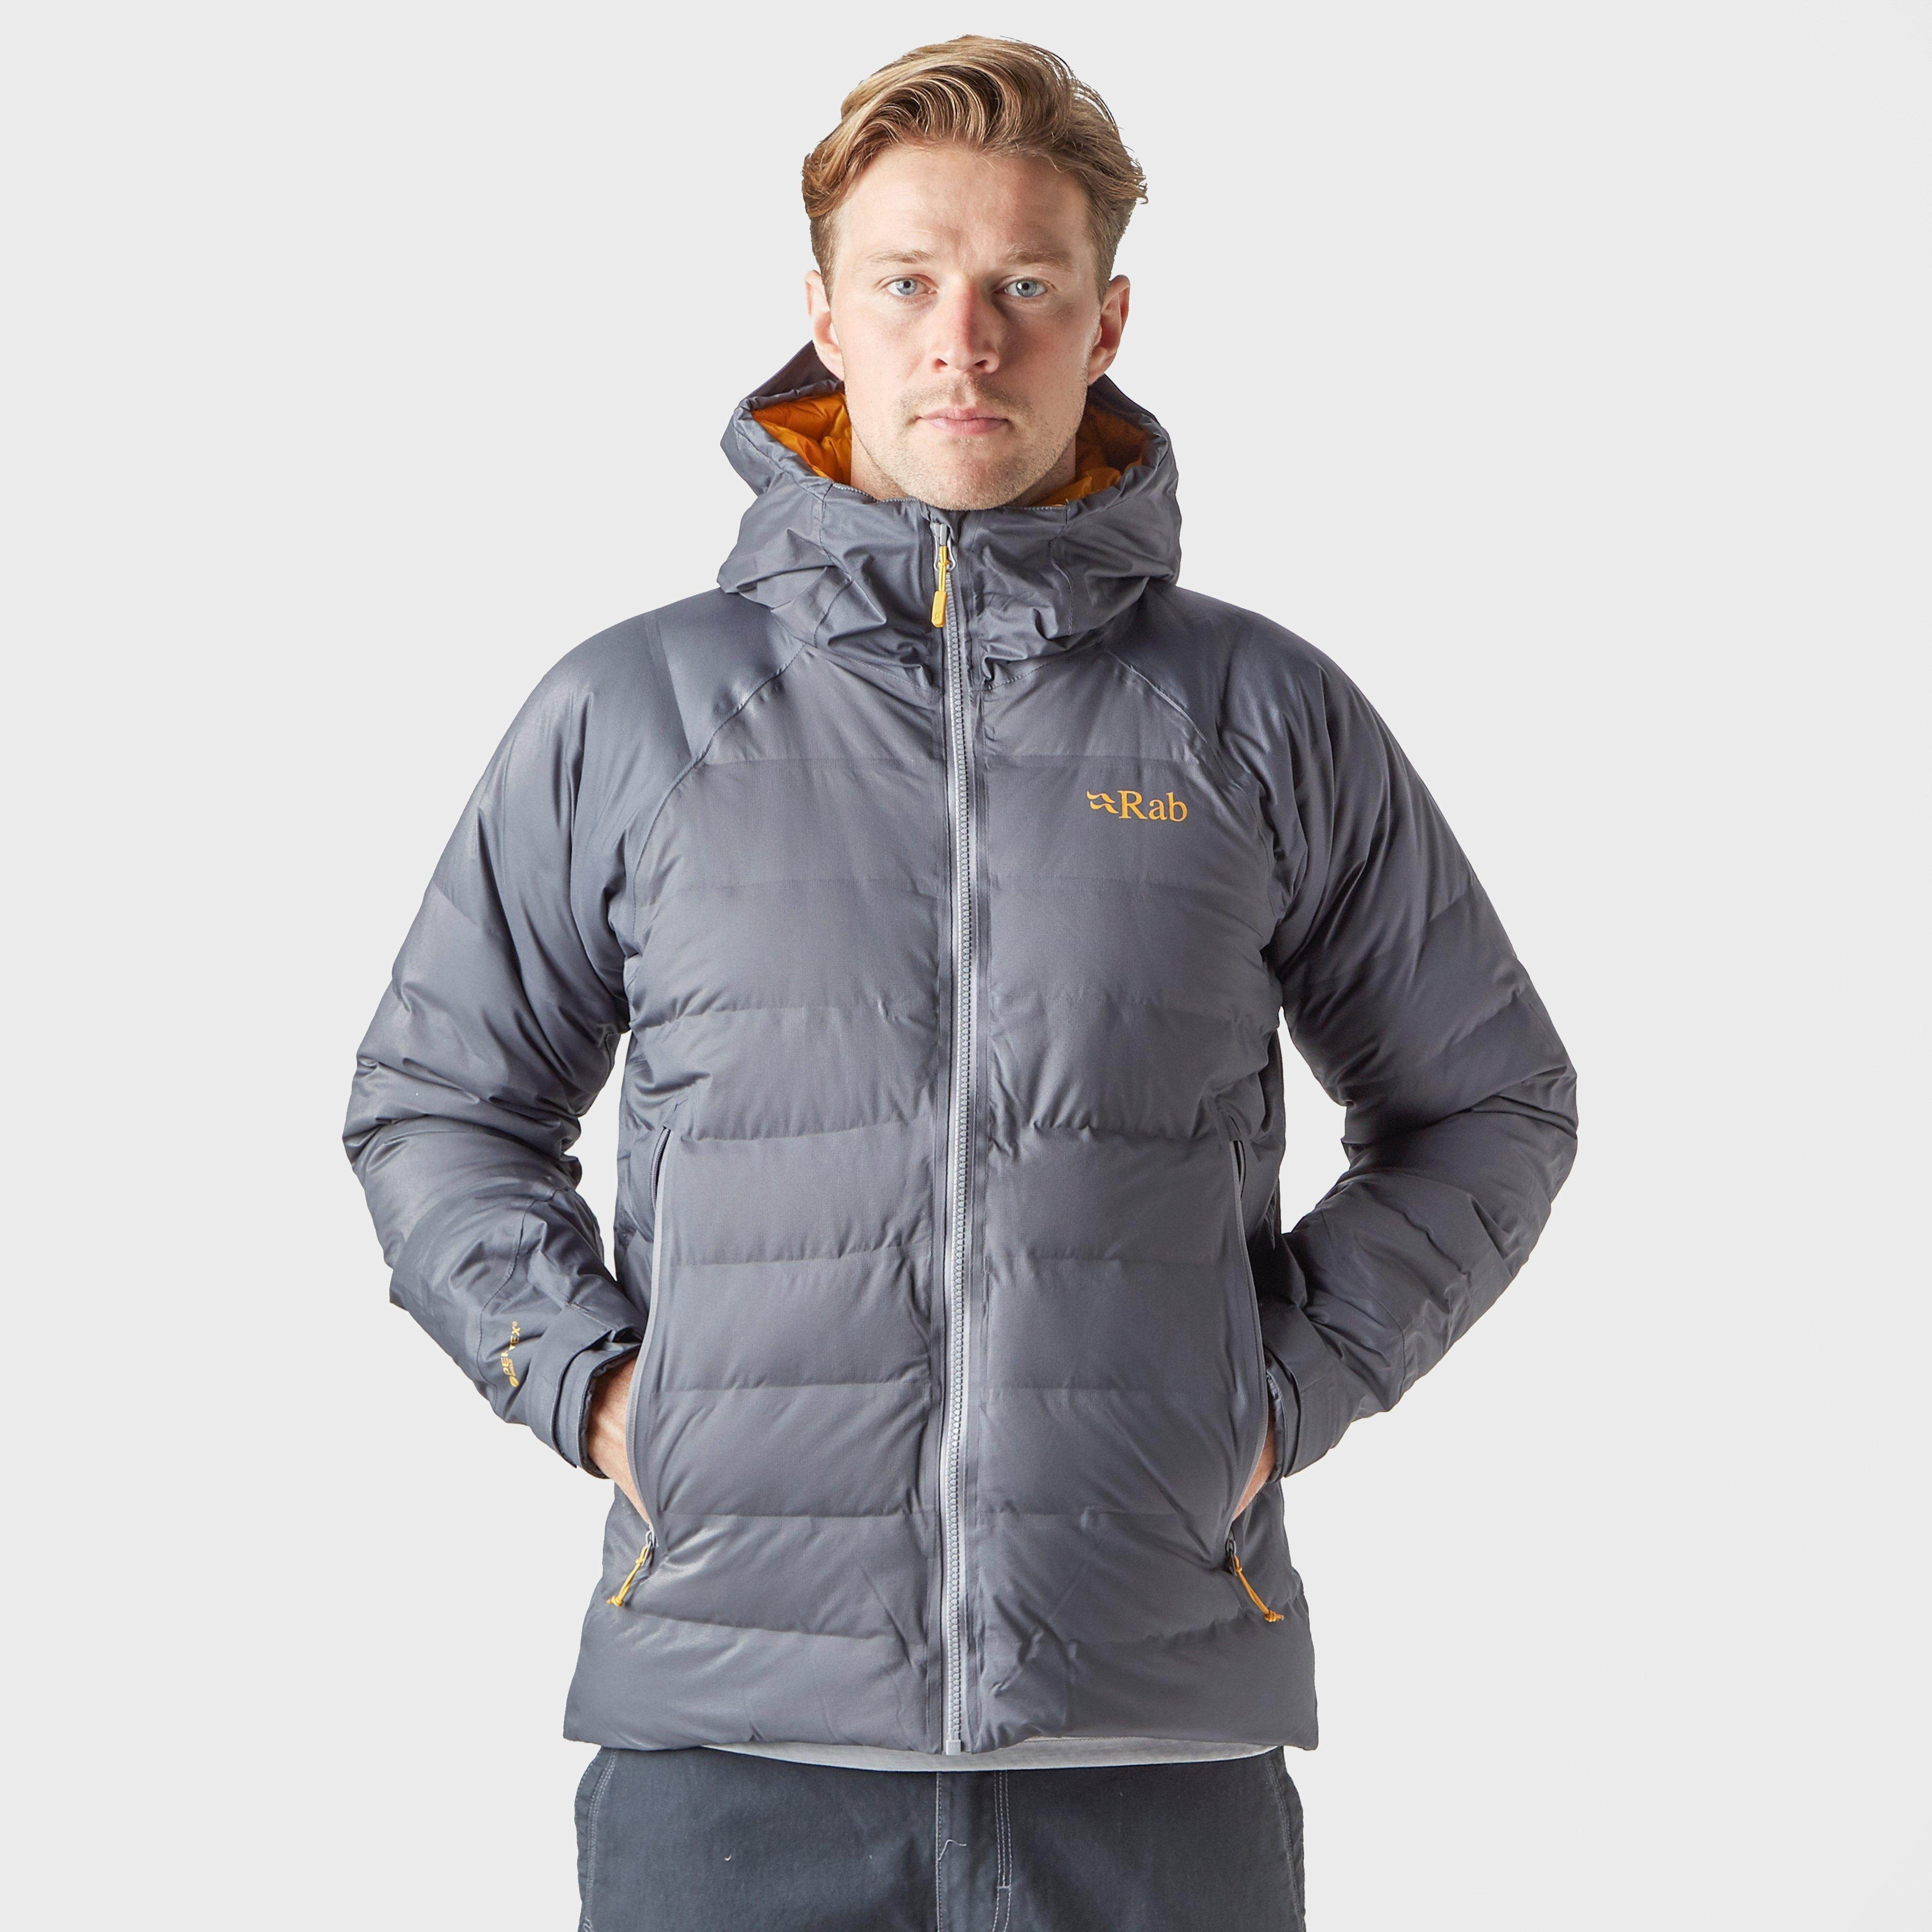 RAB Men's Valiance Insulated Jacket